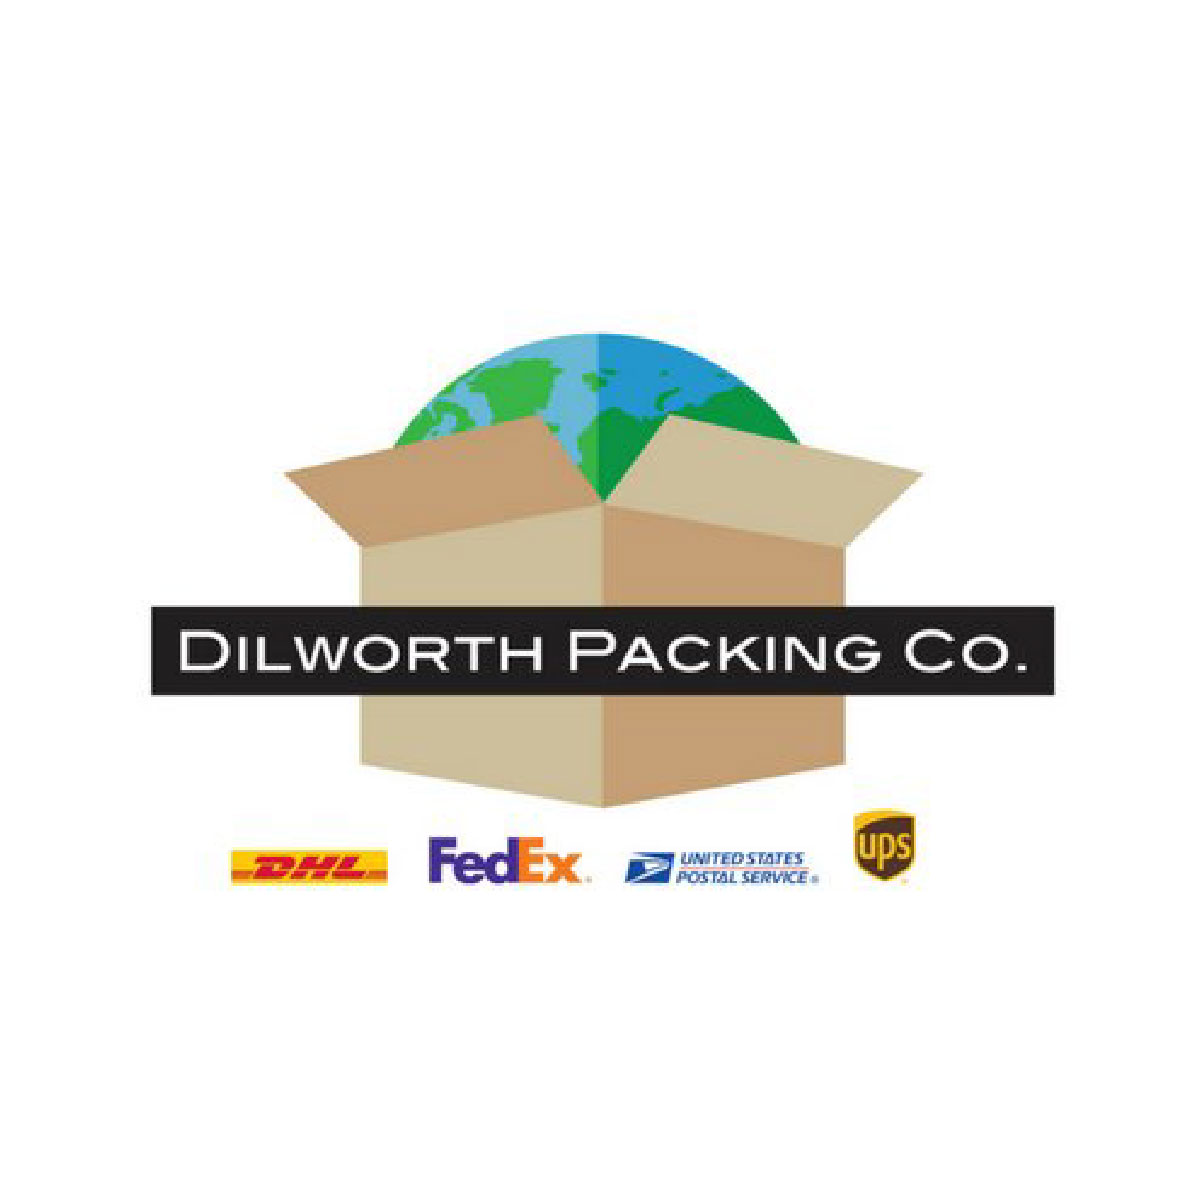 Dilworth Packing Company receive 15% off to ship and 15% off boxes/packing items. PO Box offer; for every 6 months you rent a mailbox, you get 1 month free. They also offer lamination services.